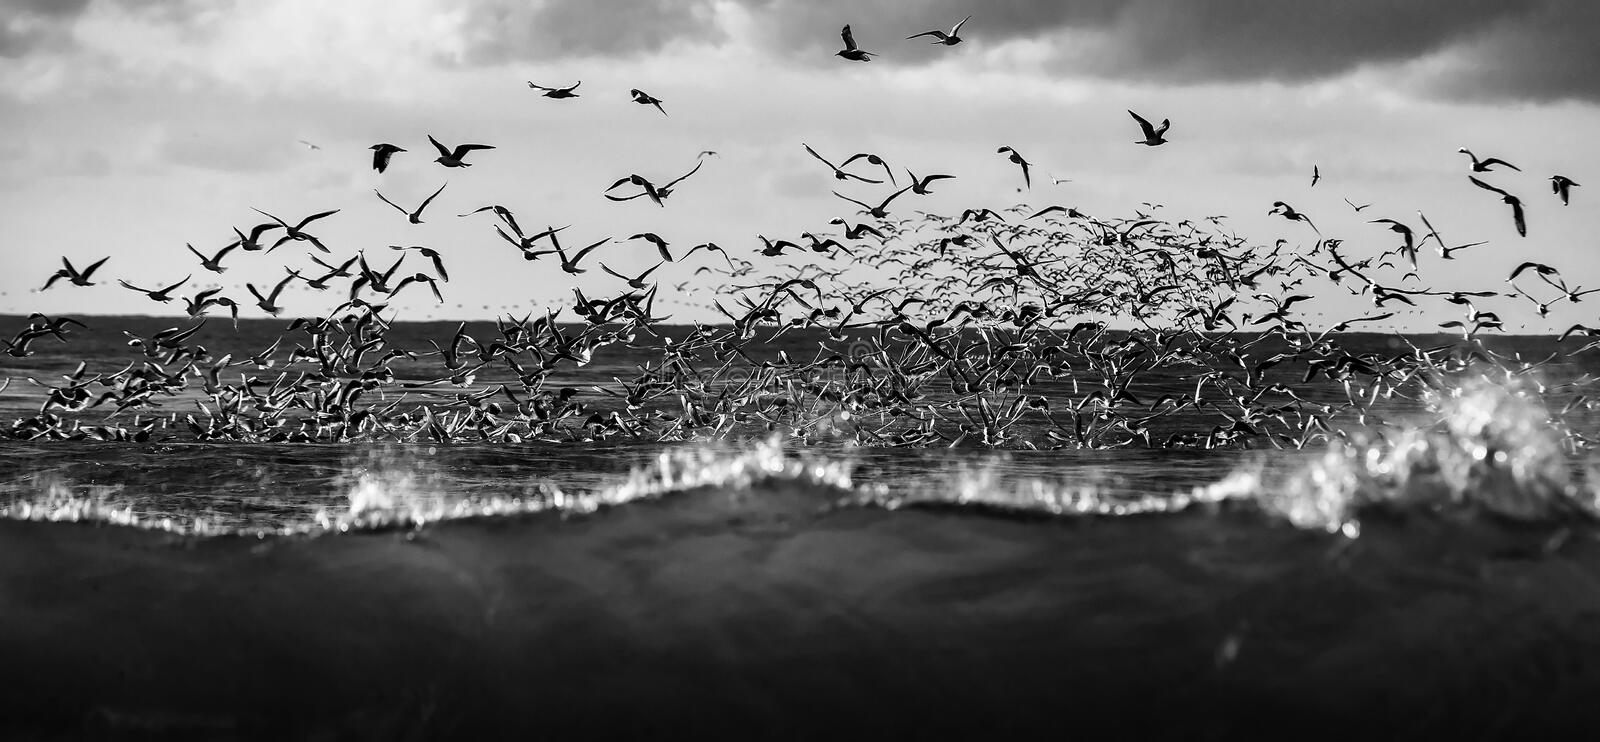 Wildlife of birds. Lots of seagulls hovering over the stormy sea at sunset stock photo